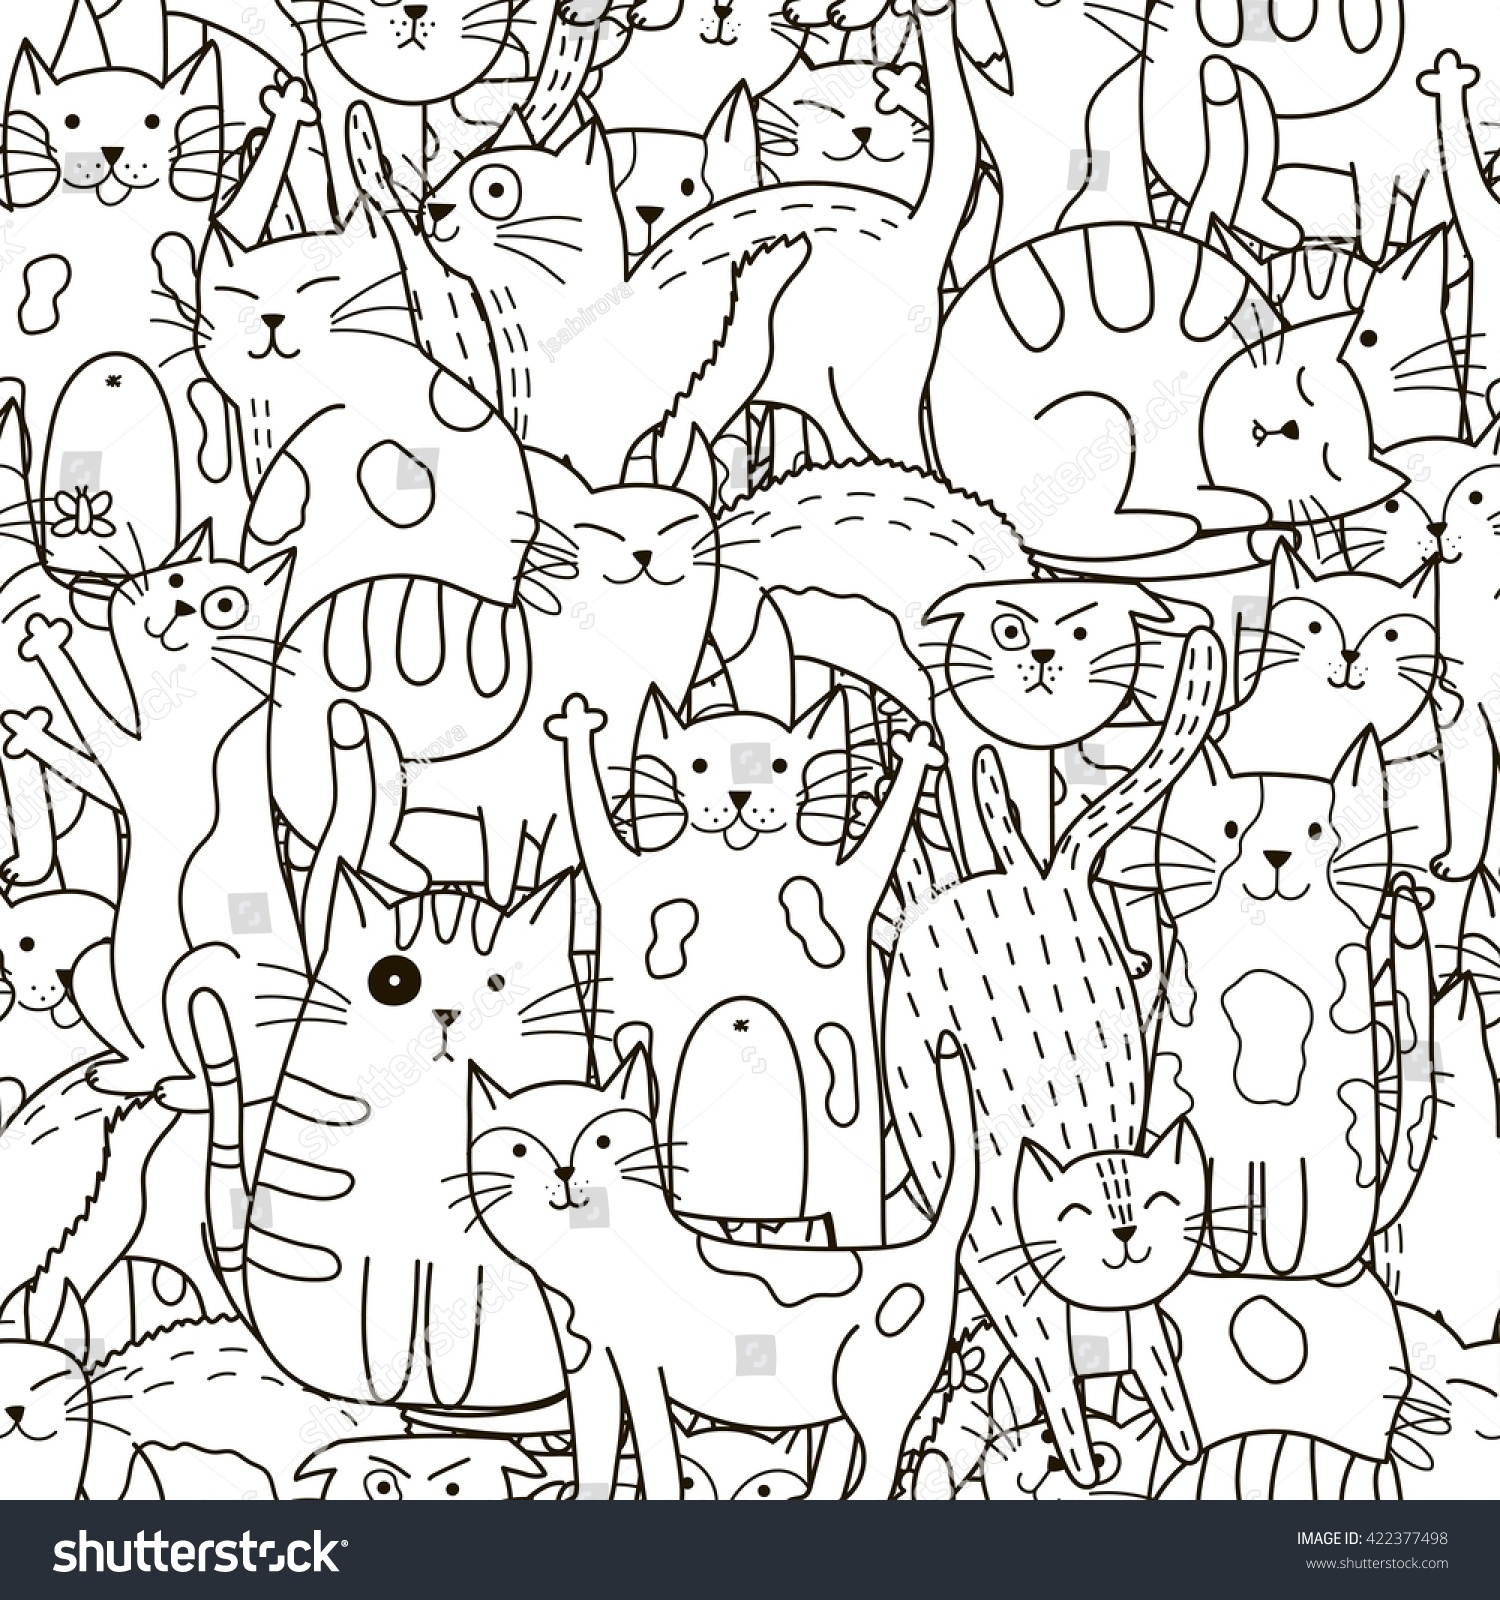 Doodle Cats Seamless Pattern Black And White Cute Background Great For Coloring Book